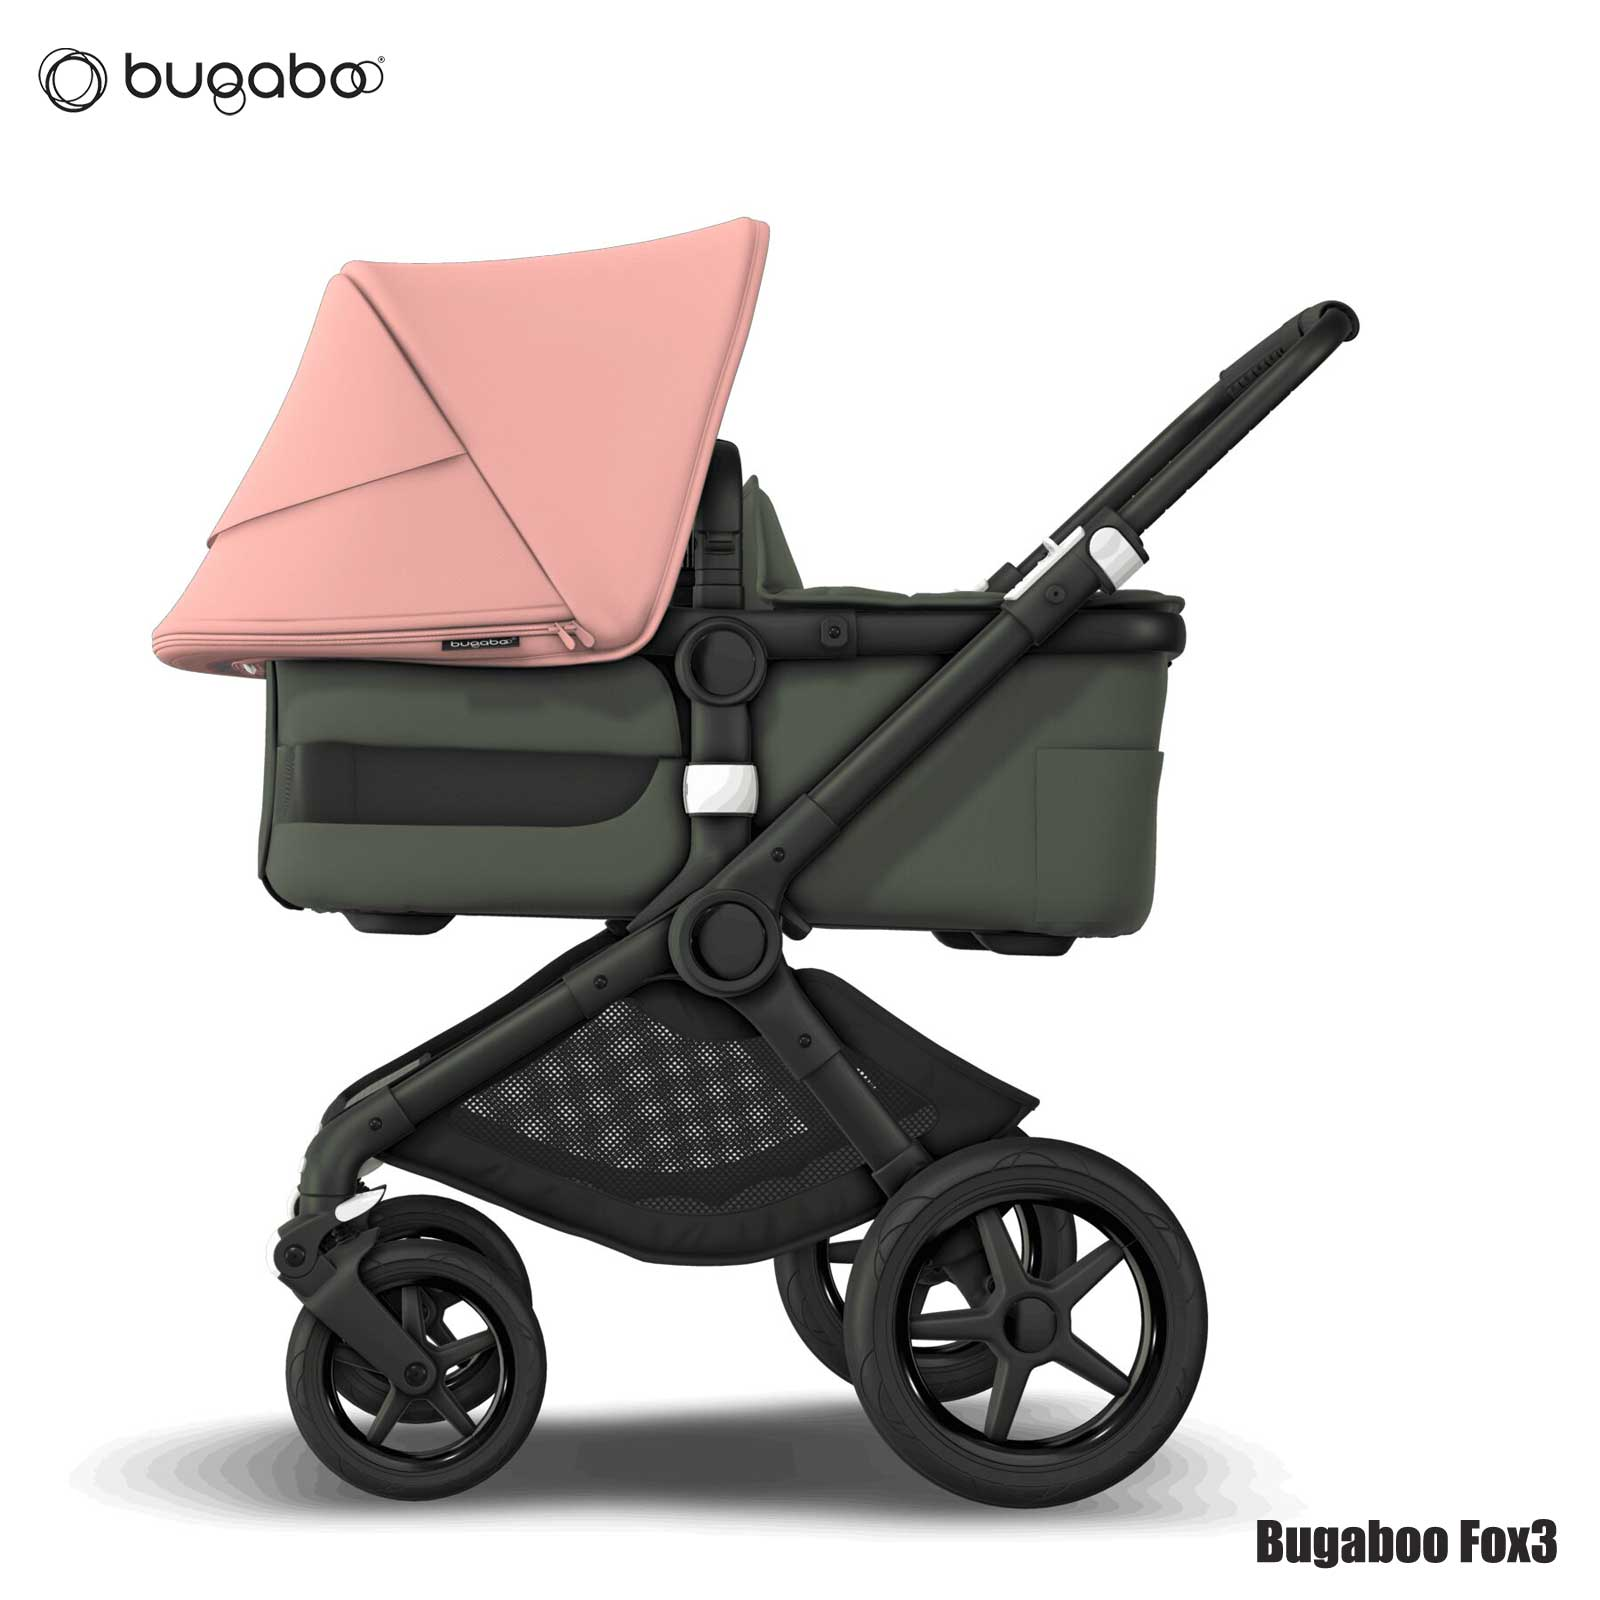 Bugaboo_Fox3_Black_Forest_green_Morning_pink_CarryCot_C79.jpg